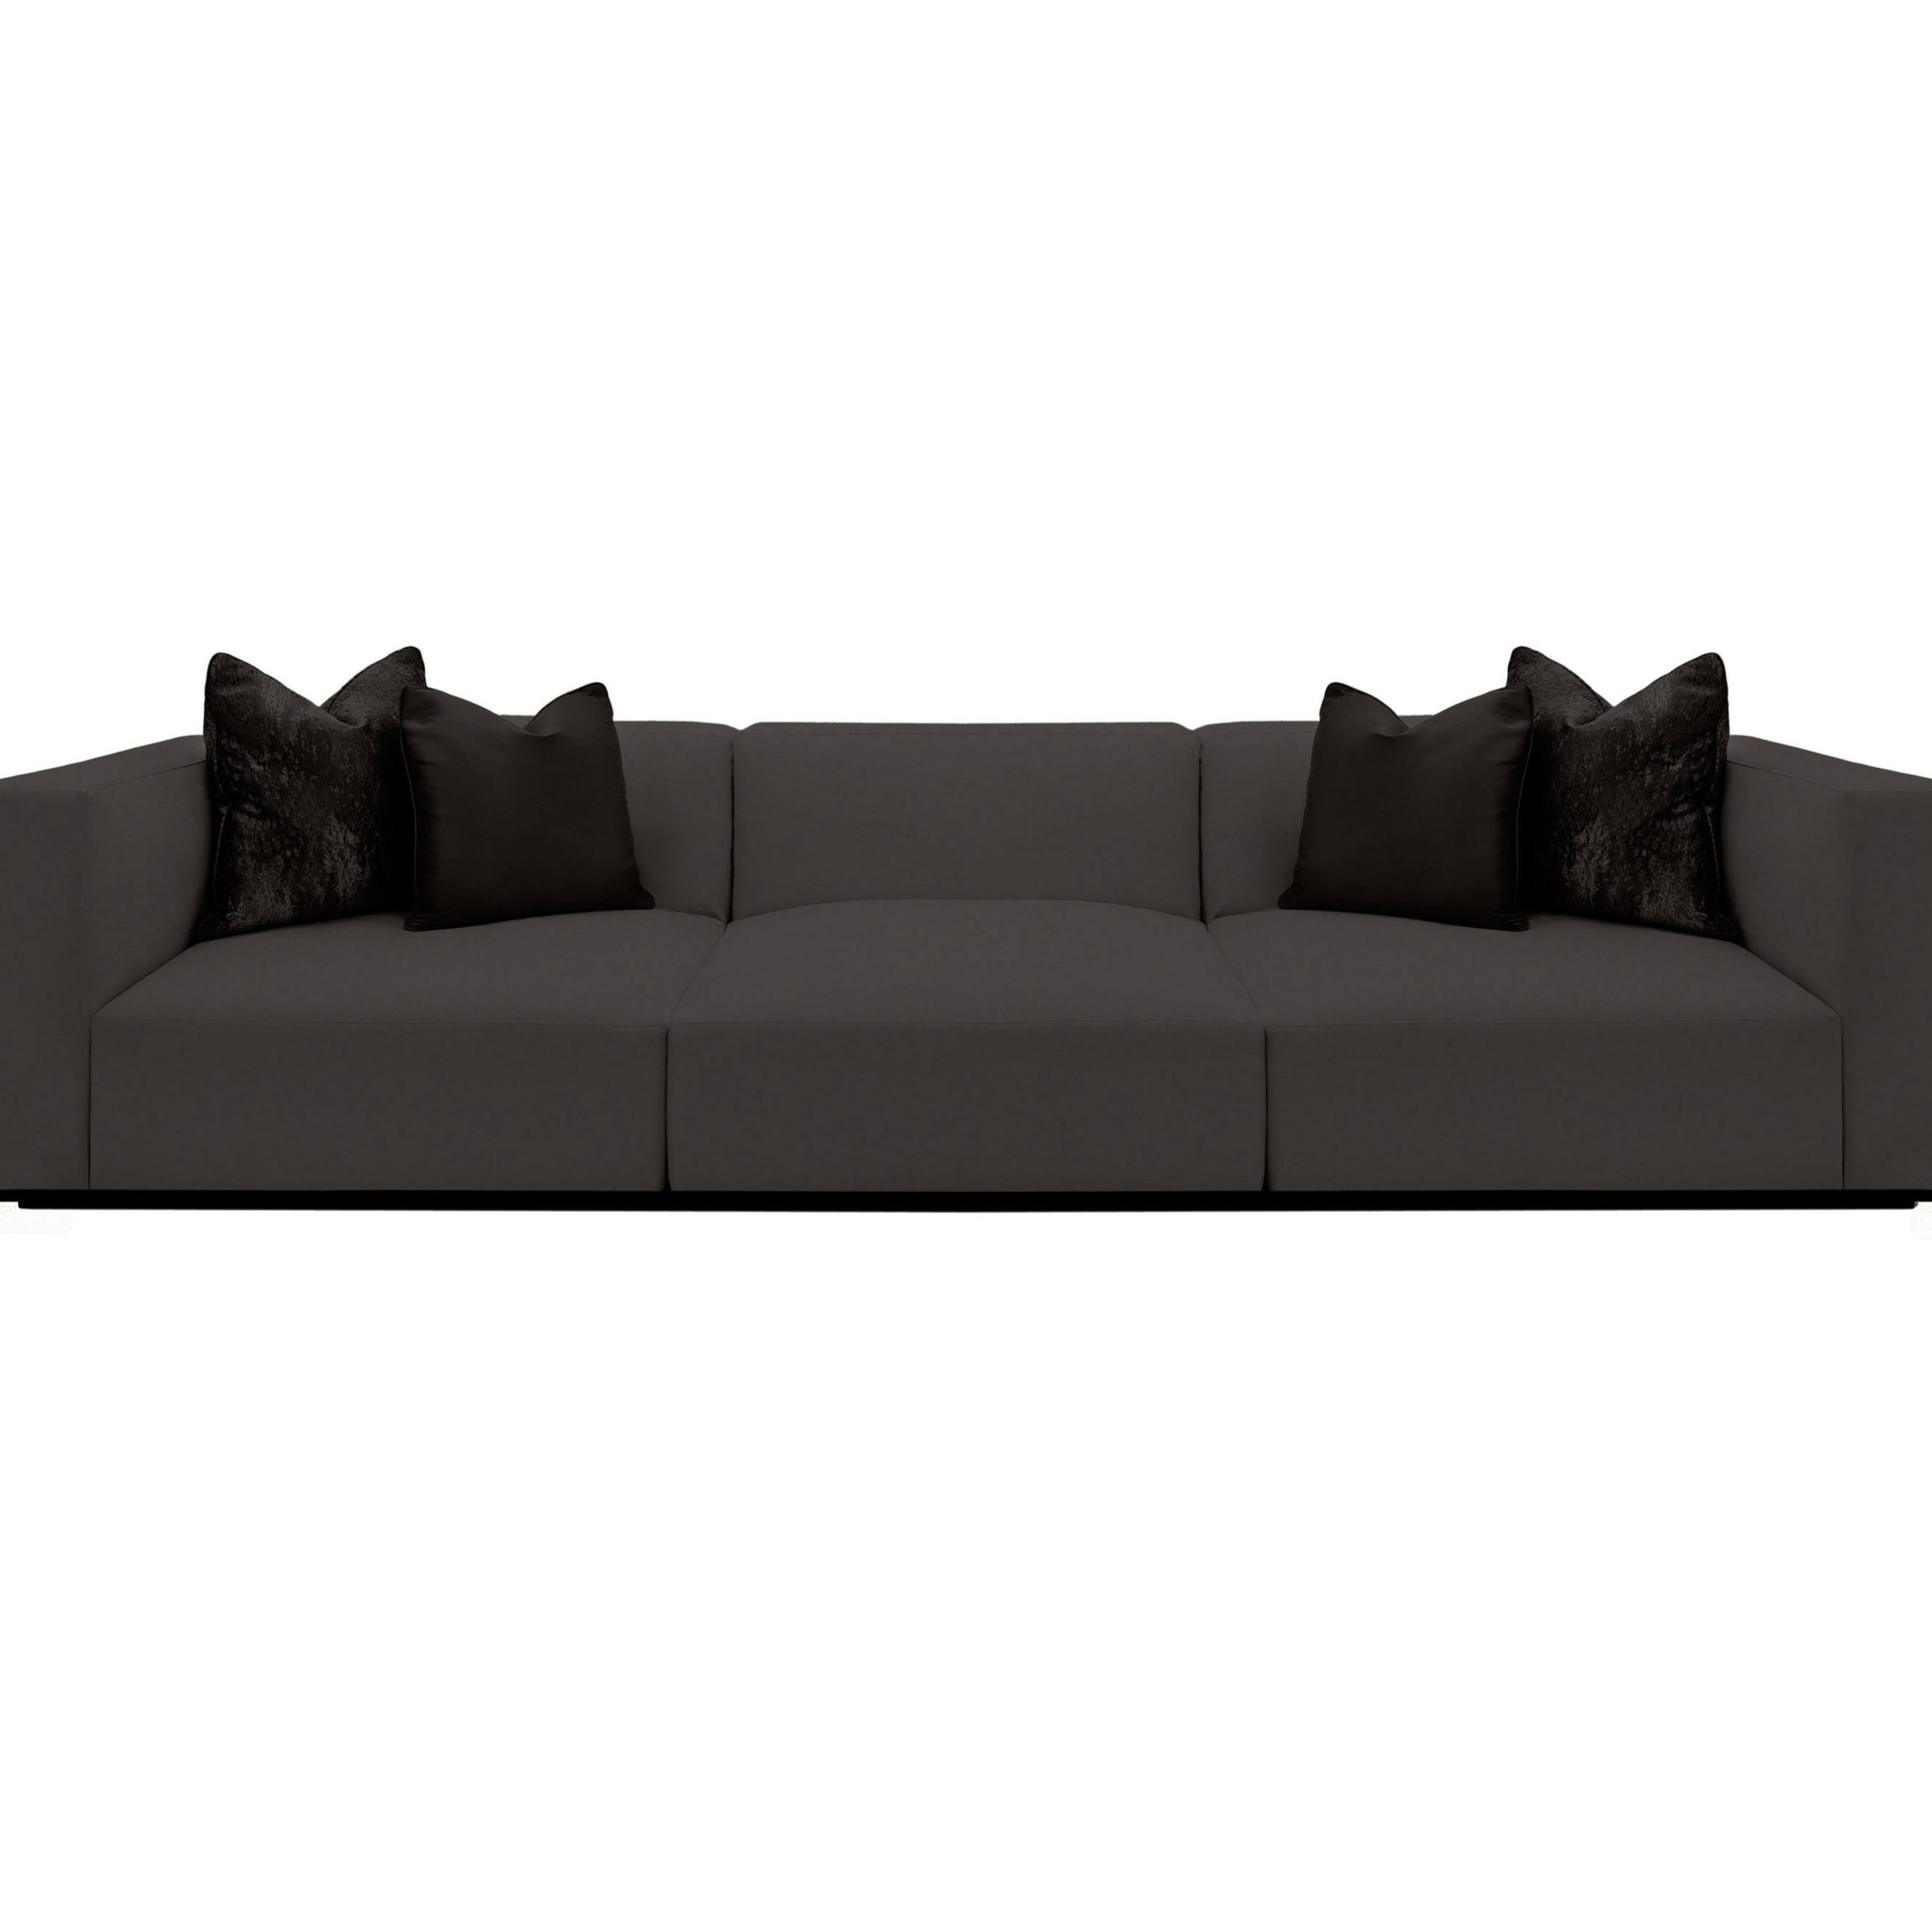 Hayward Large Sofa & Designer Furniture | Architonic For Wide Sofa Chairs (View 9 of 15)